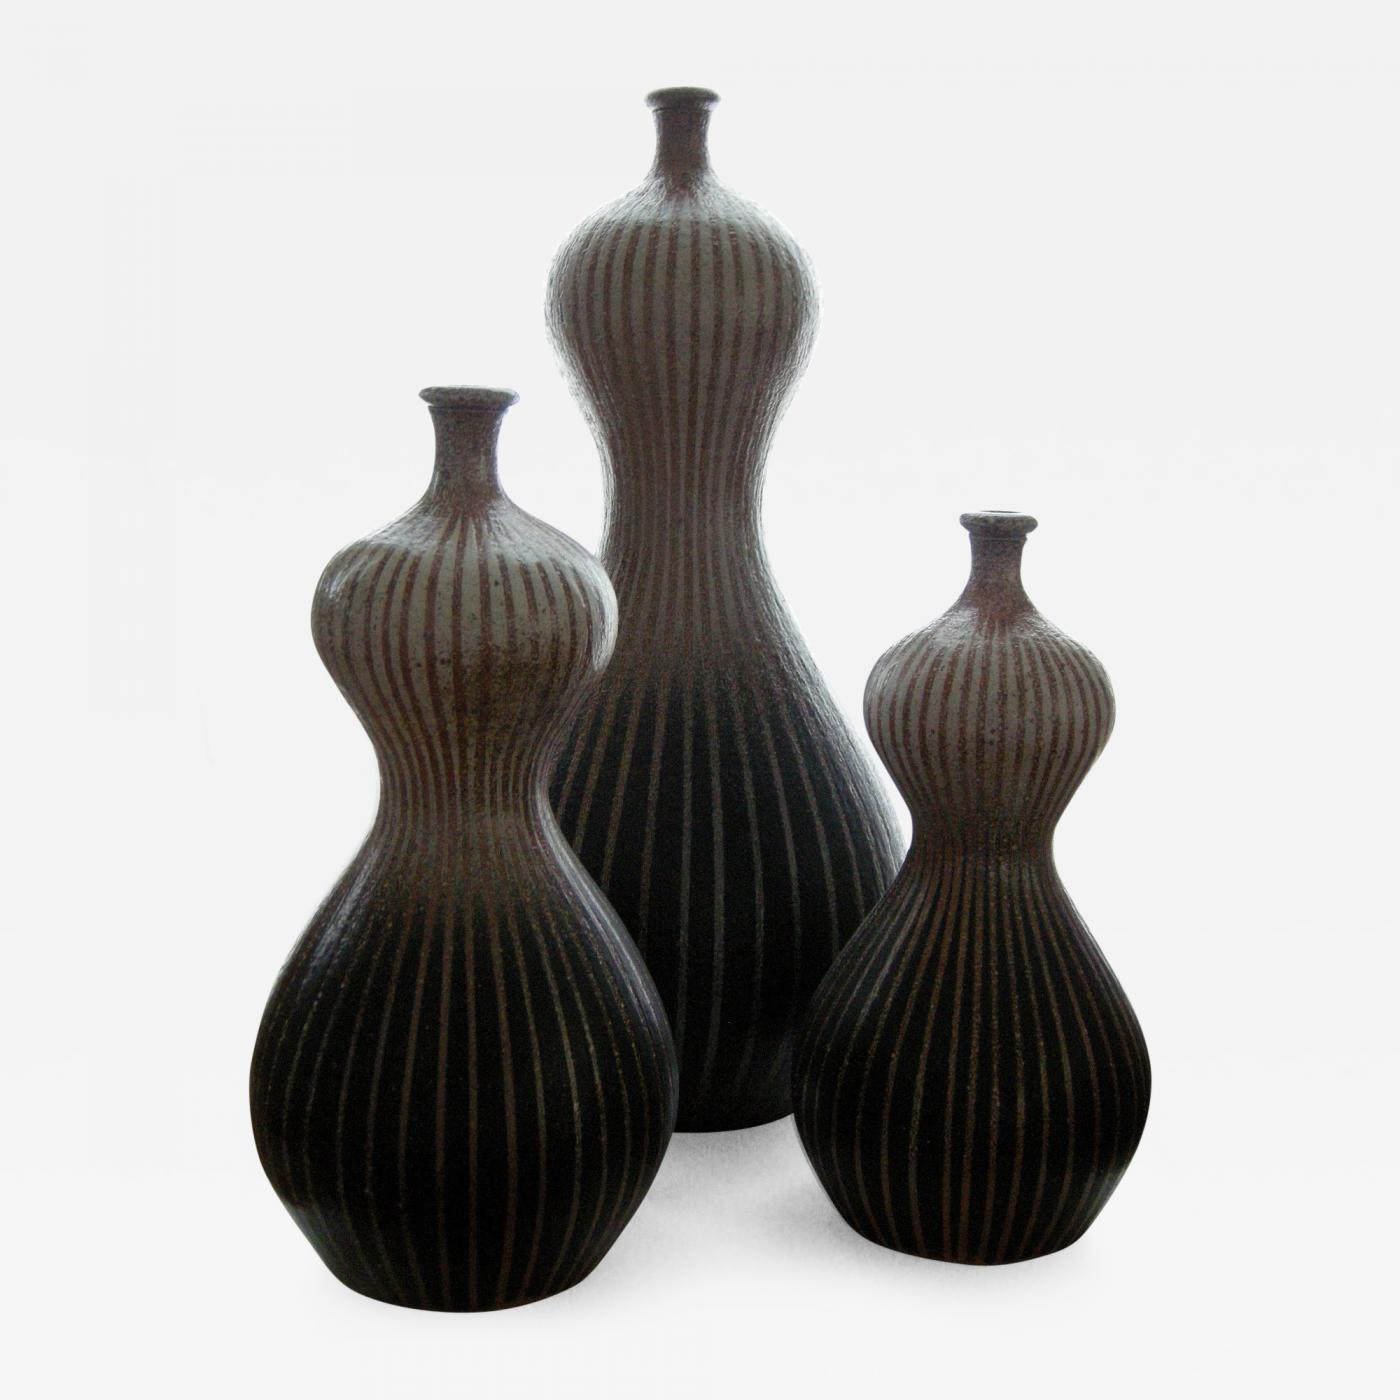 Donna craven a trio of double gourd vases listings decorative arts objects vases jars urns reviewsmspy